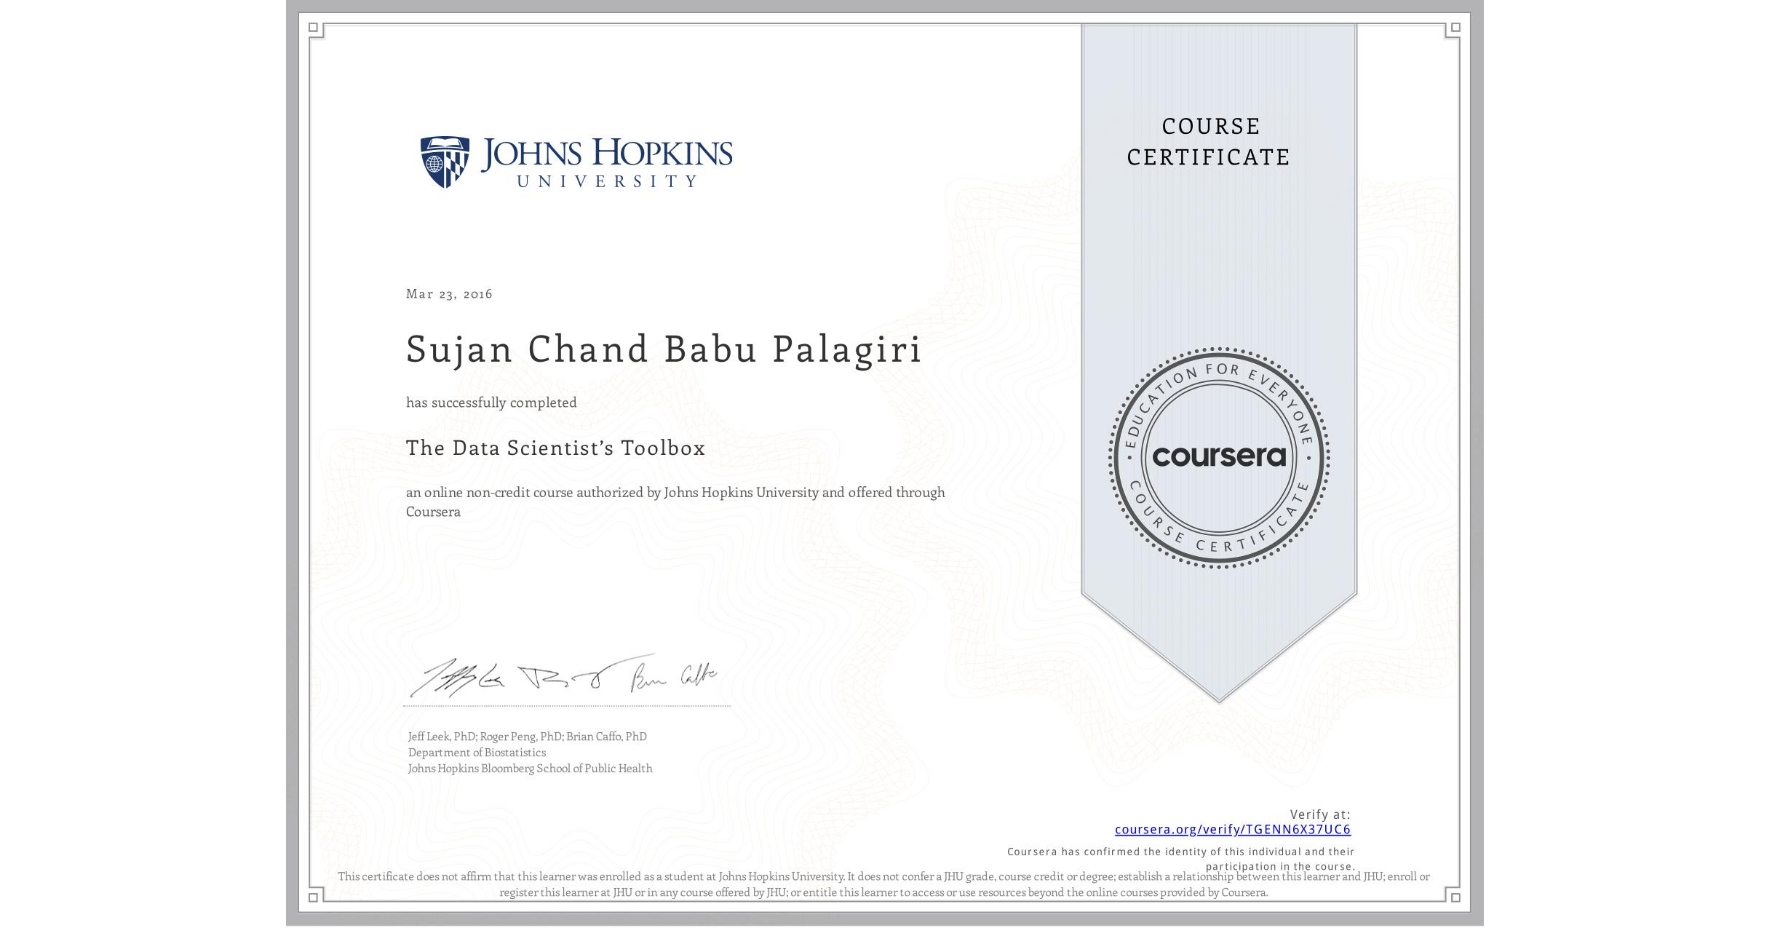 View certificate for Sujan Chand Babu Palagiri, The Data Scientist's Toolbox, an online non-credit course authorized by Johns Hopkins University and offered through Coursera